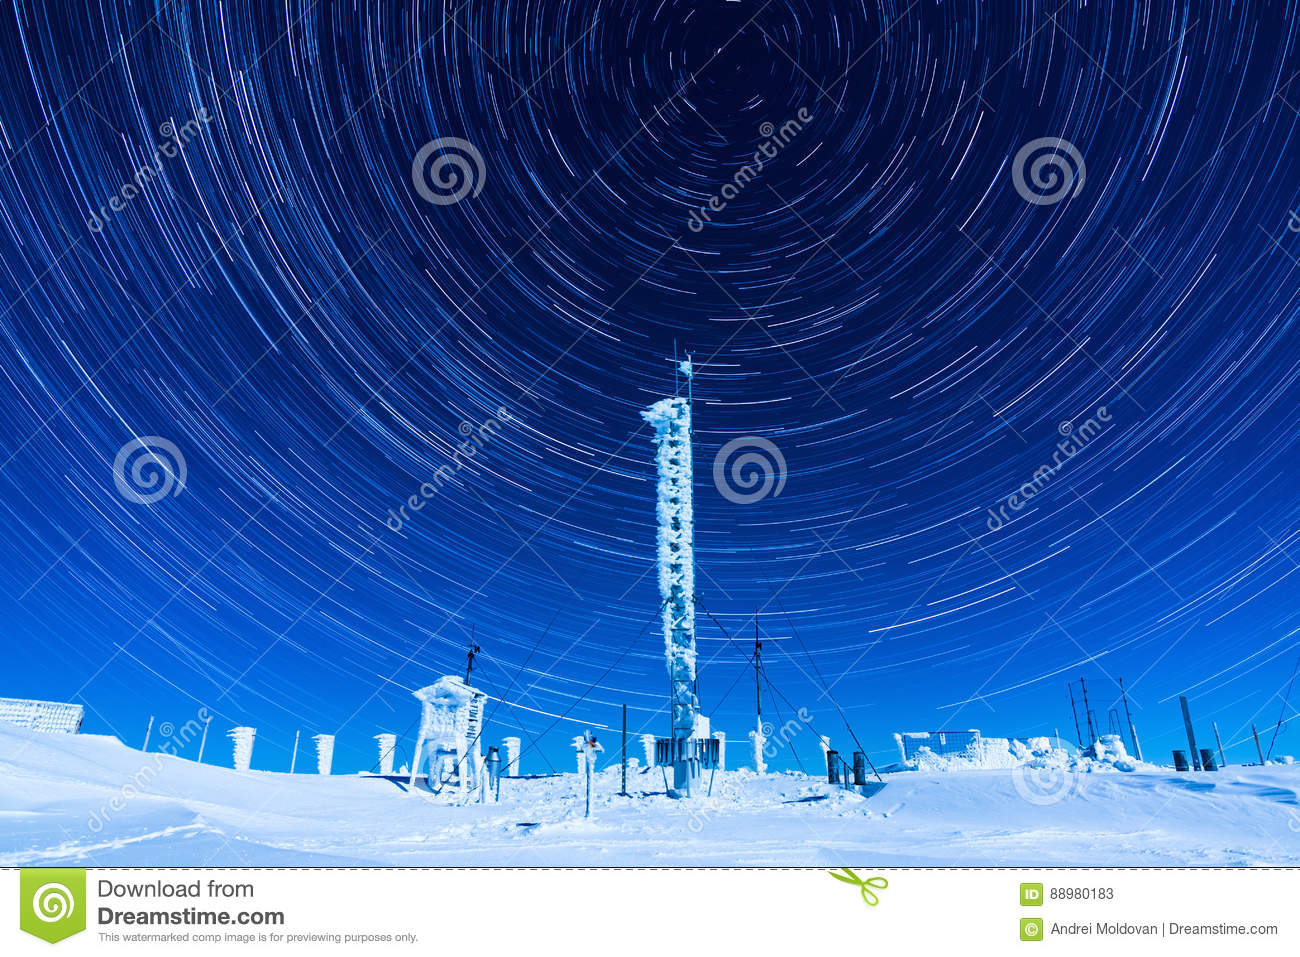 Beautiful star trails on the night sky during a clear winter night while spending time on top of a mountain